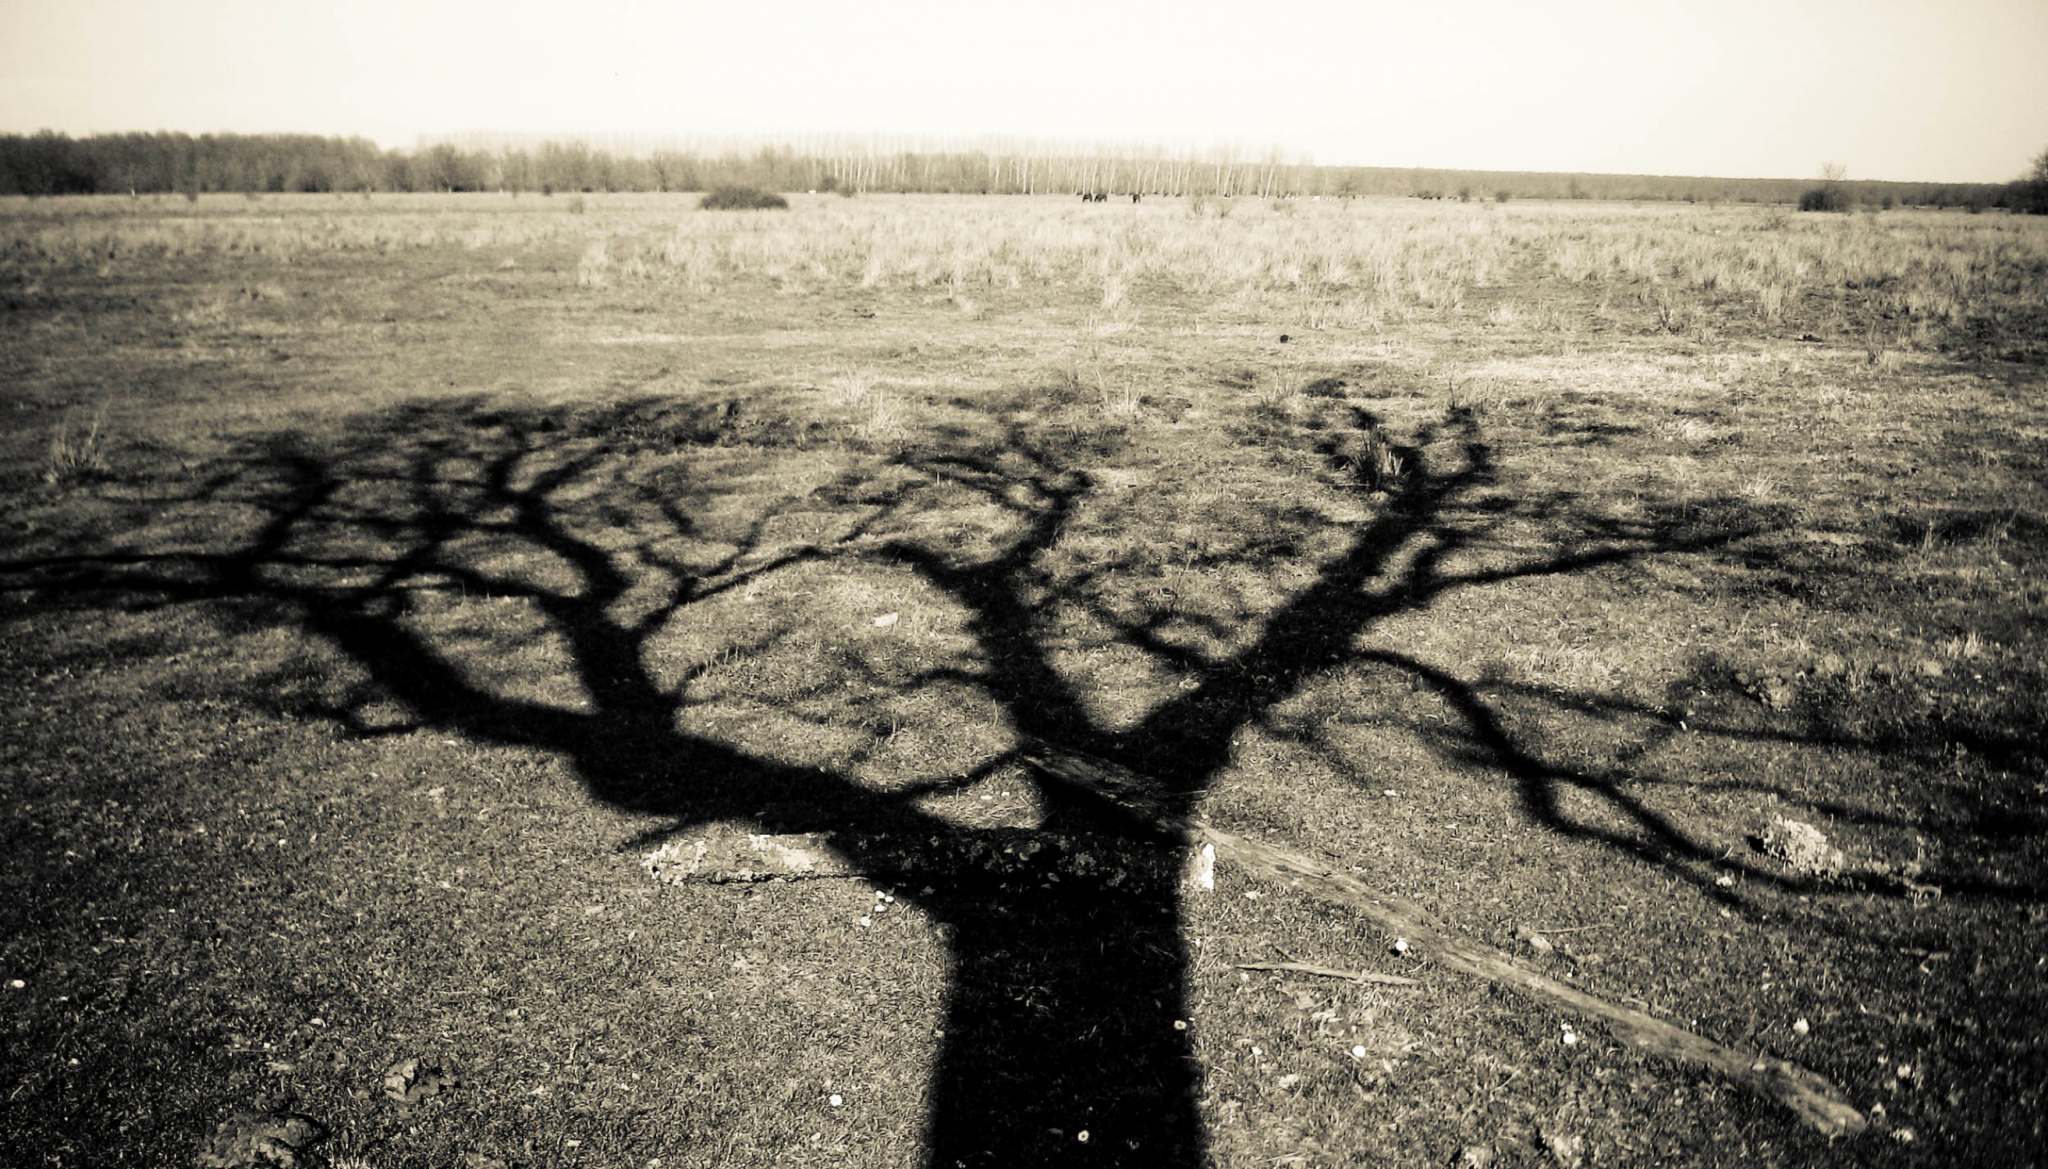 Shadow IT spreads across your workplace like the shadow of this tree does over the ground. Is it sunset for the IT profession as we traditionally know it?